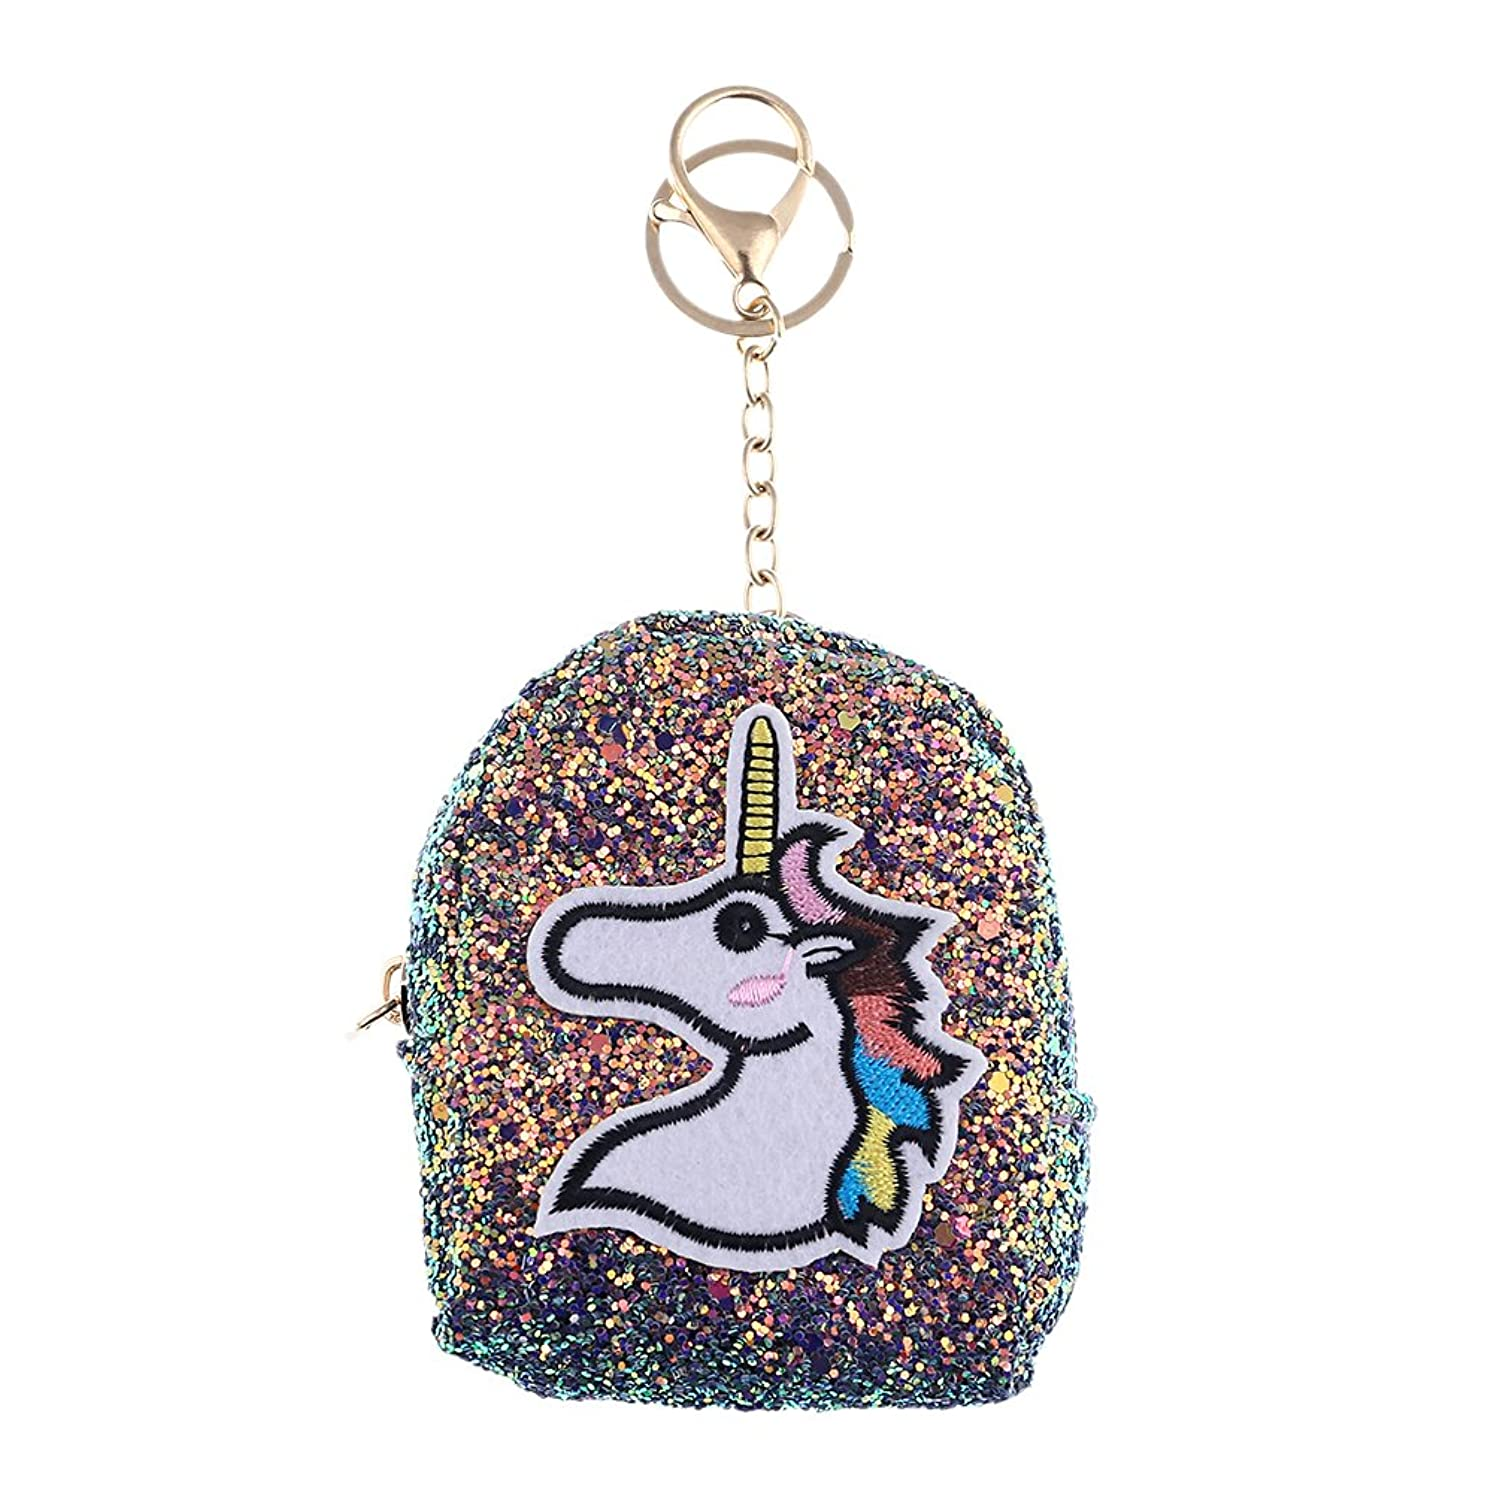 Qlychee ACCESSORY B07C9HGC19Purple Unicorn 4